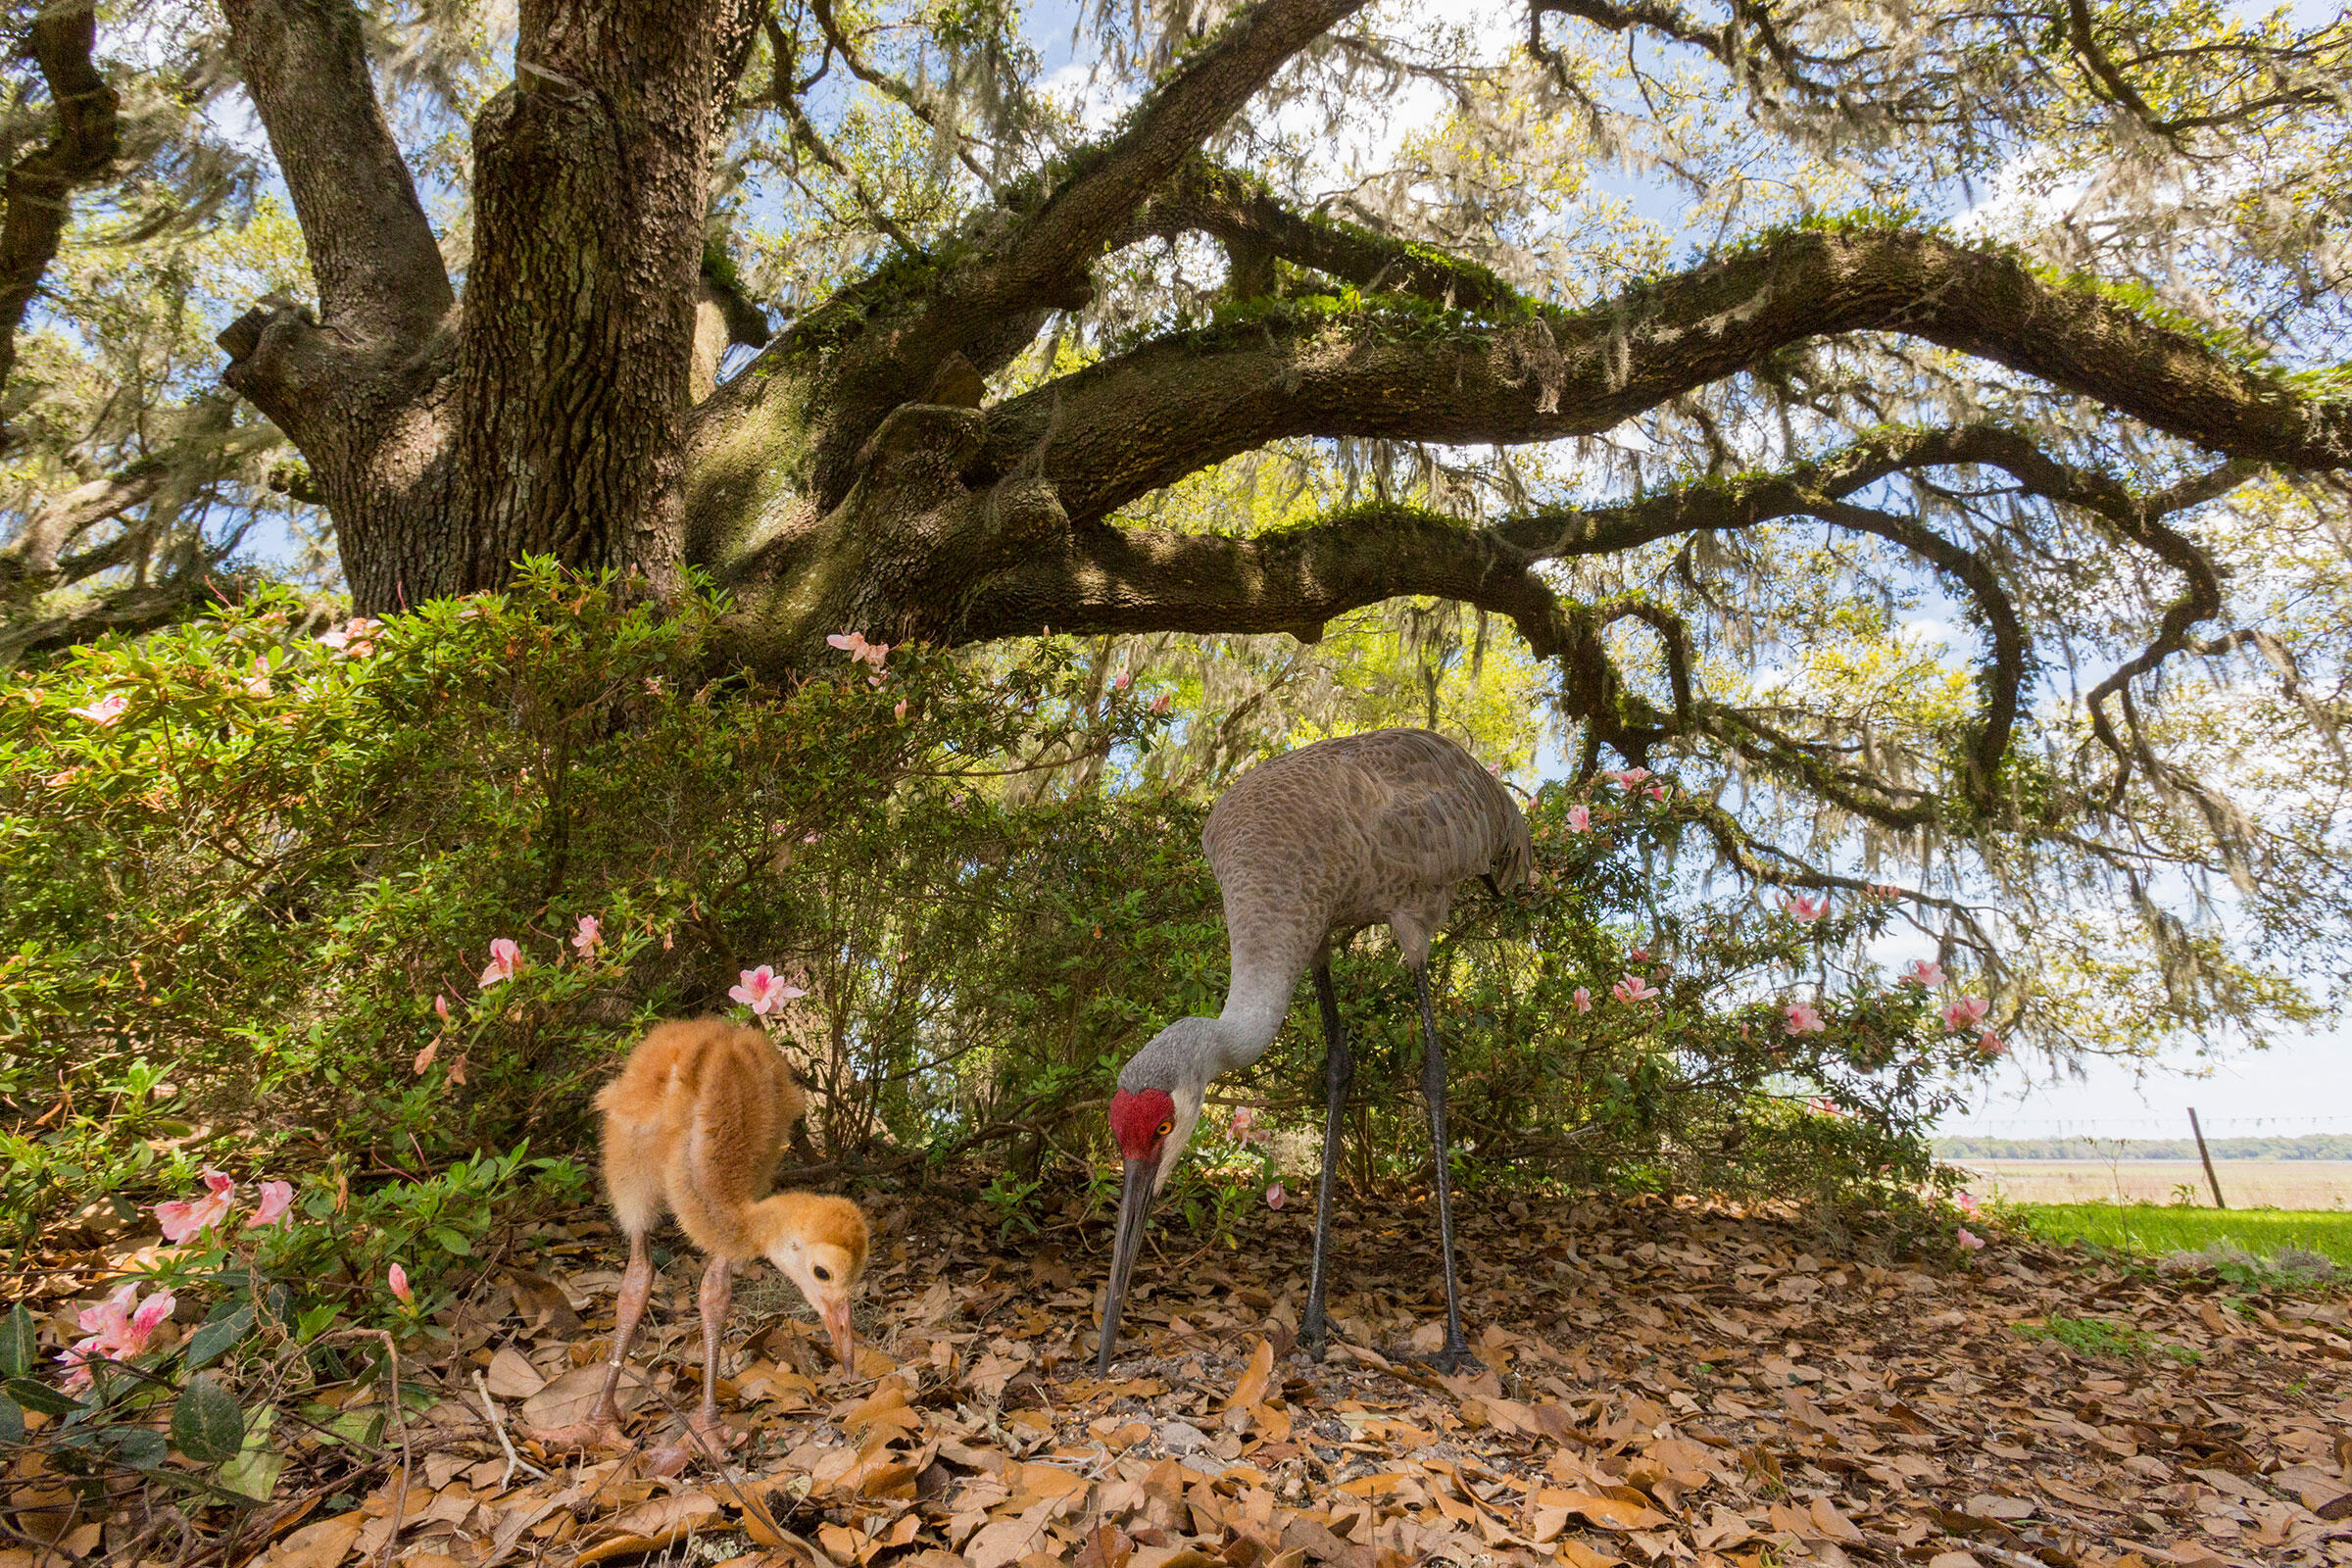 Using remote triggers to operate your camera, birds like these Sandhill Cranes will carry on as if no one was watching. Mac Stone